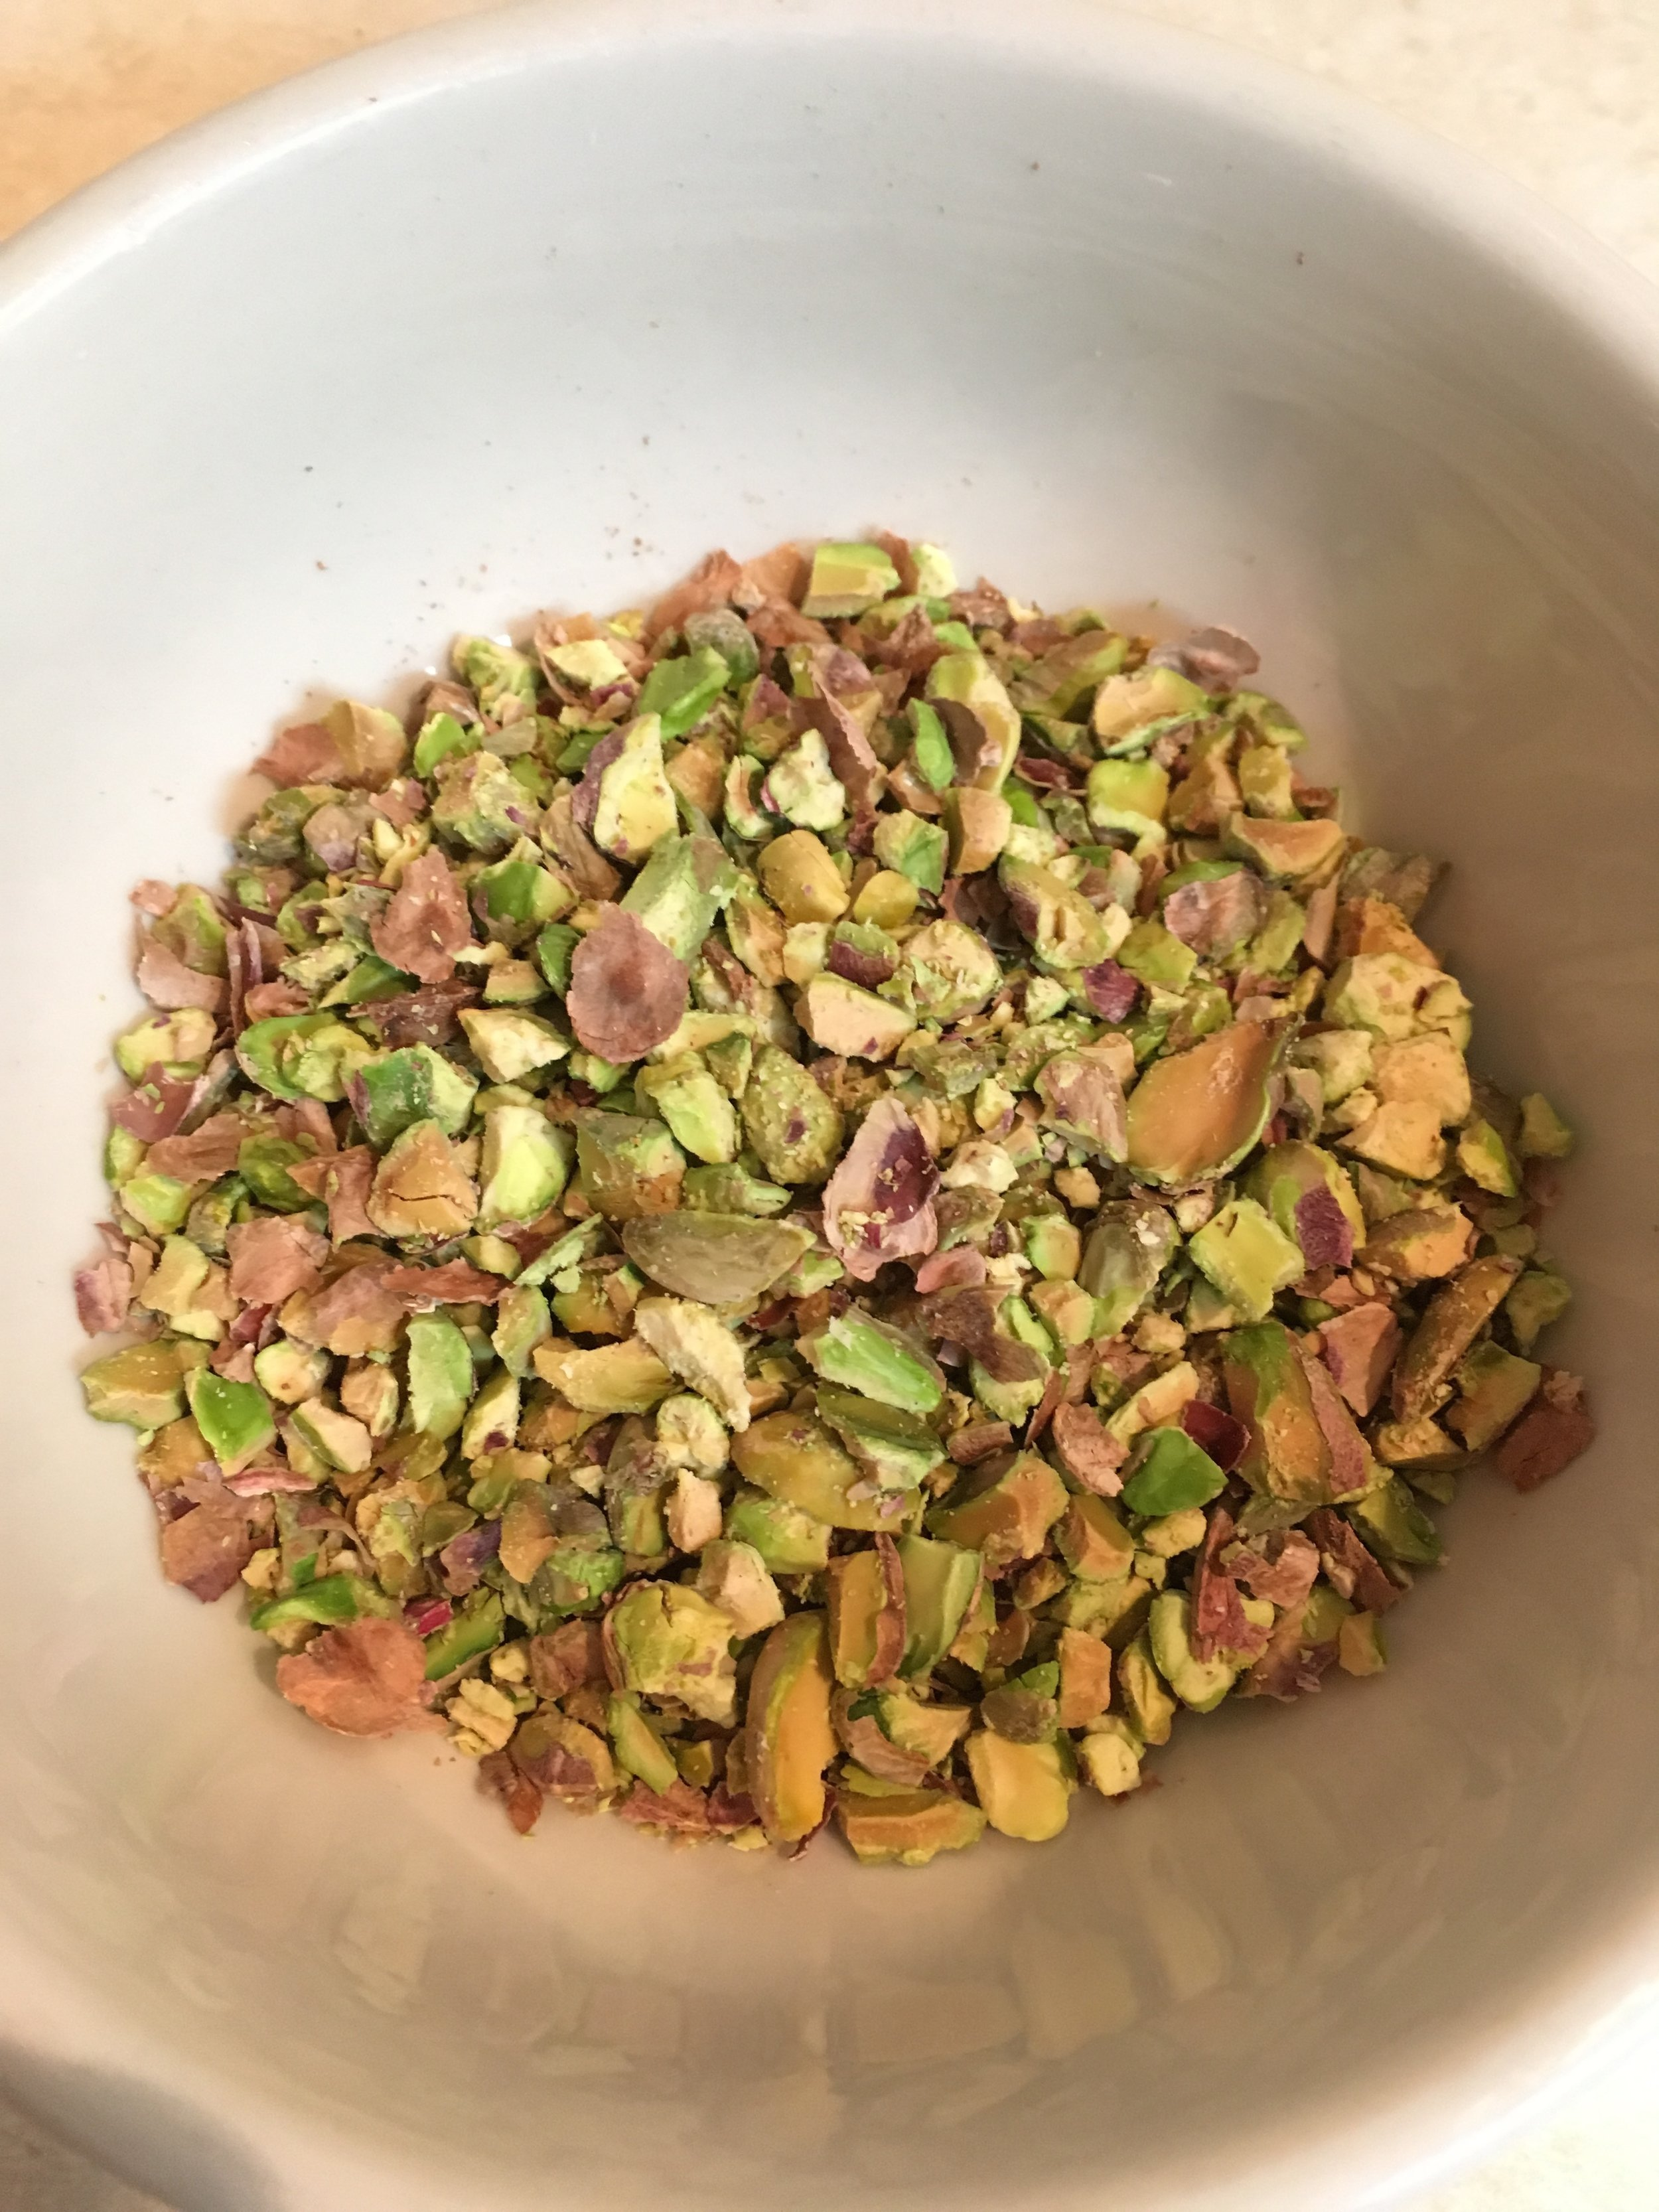 Crushed up pistachios